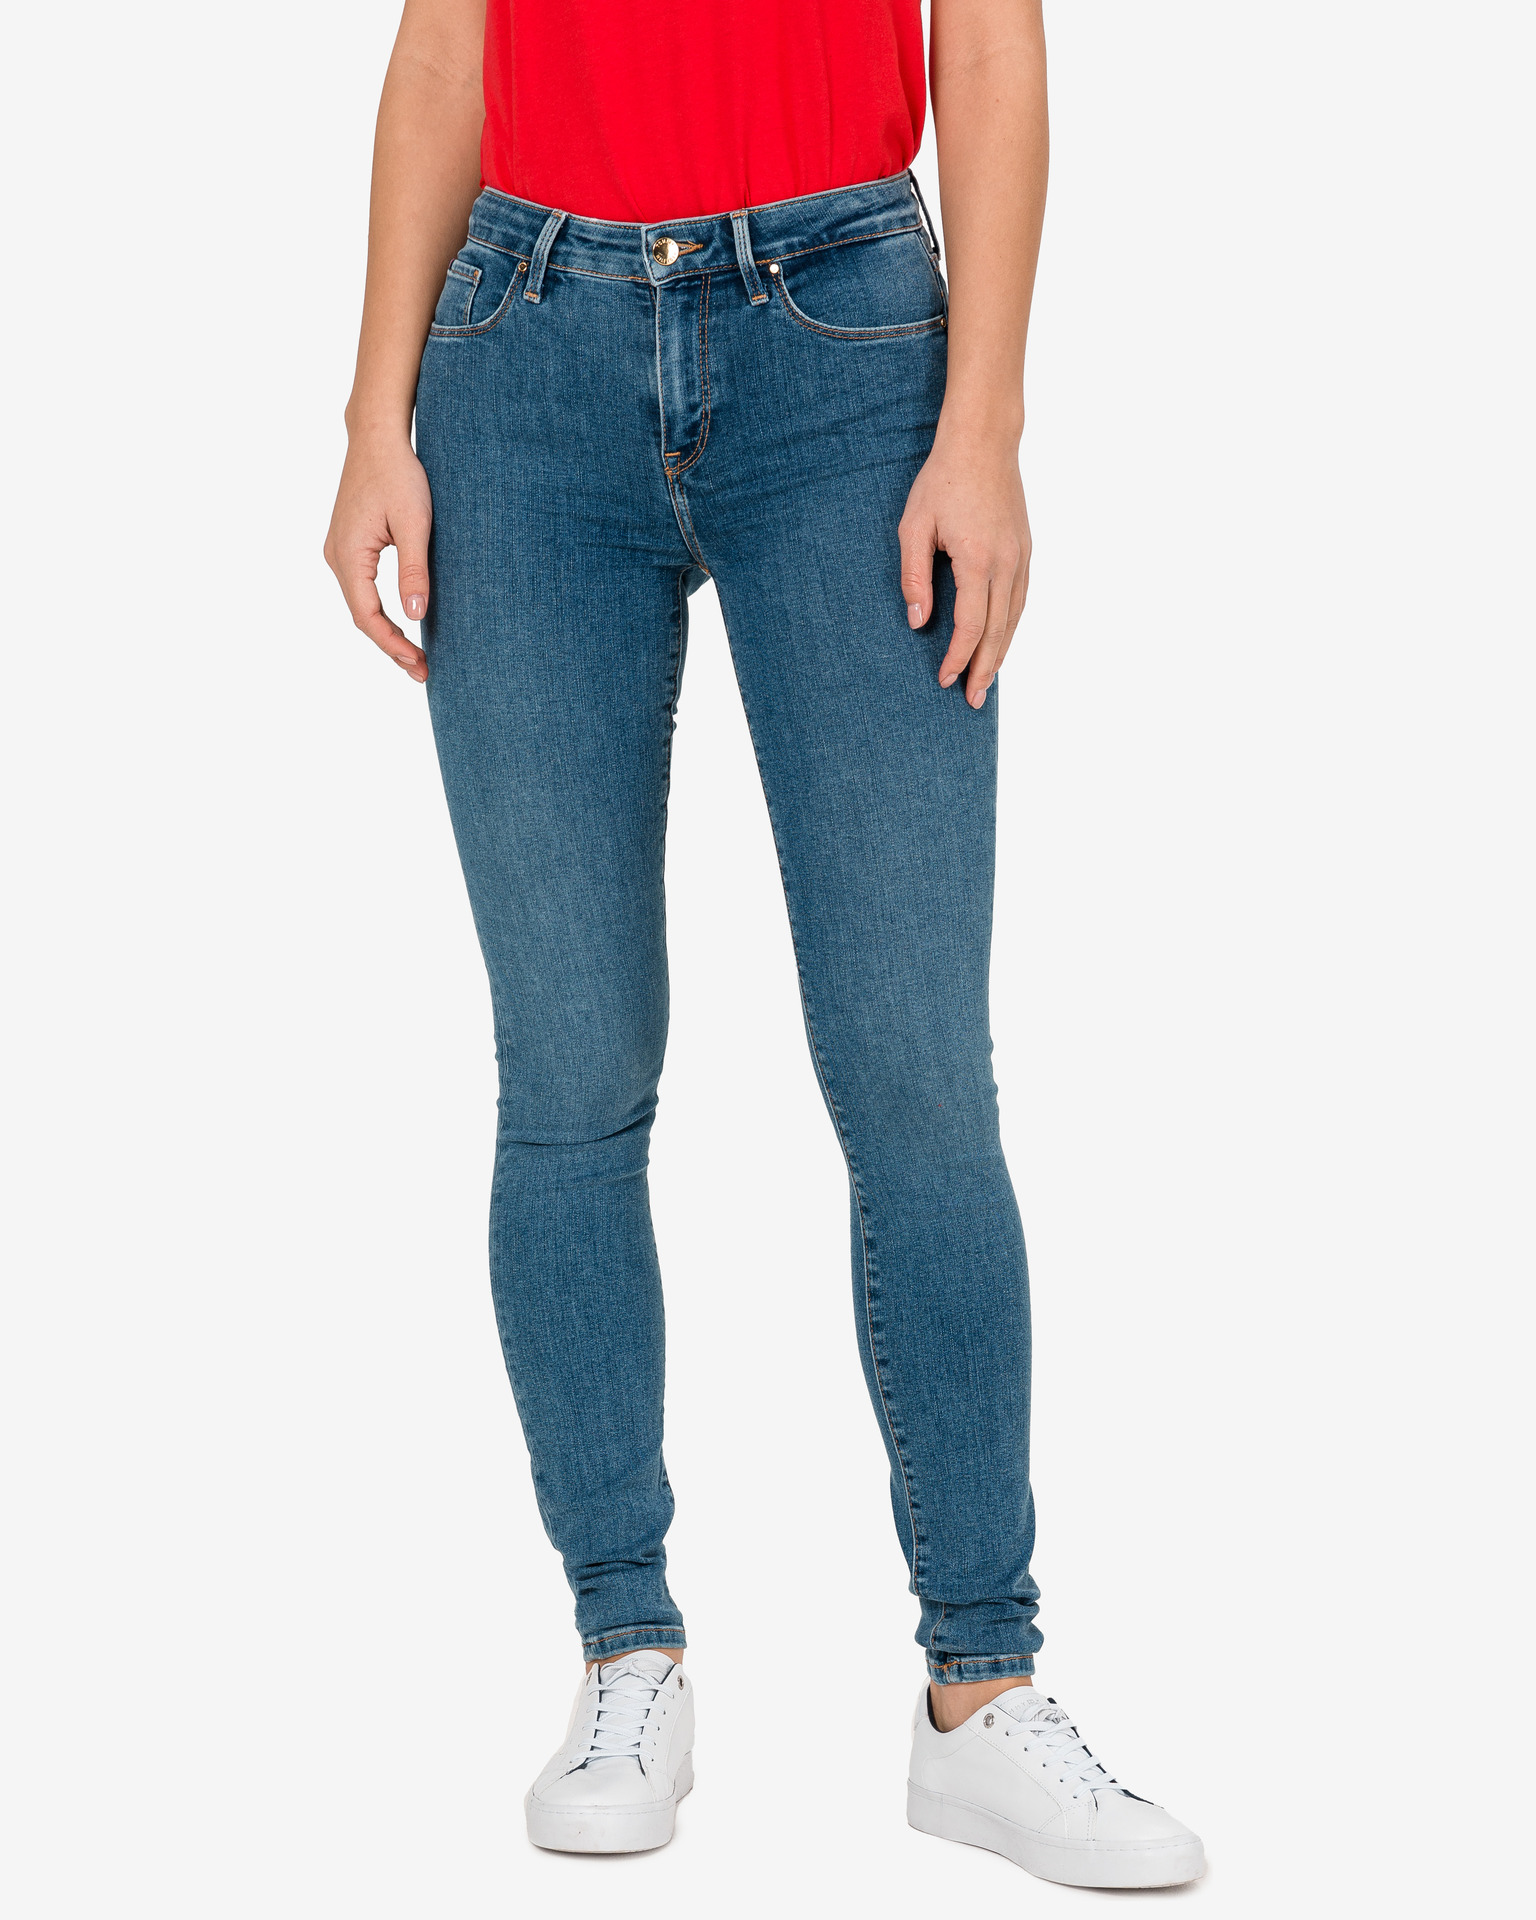 Essential TH Flex Como Jeans Tommy Hilfiger